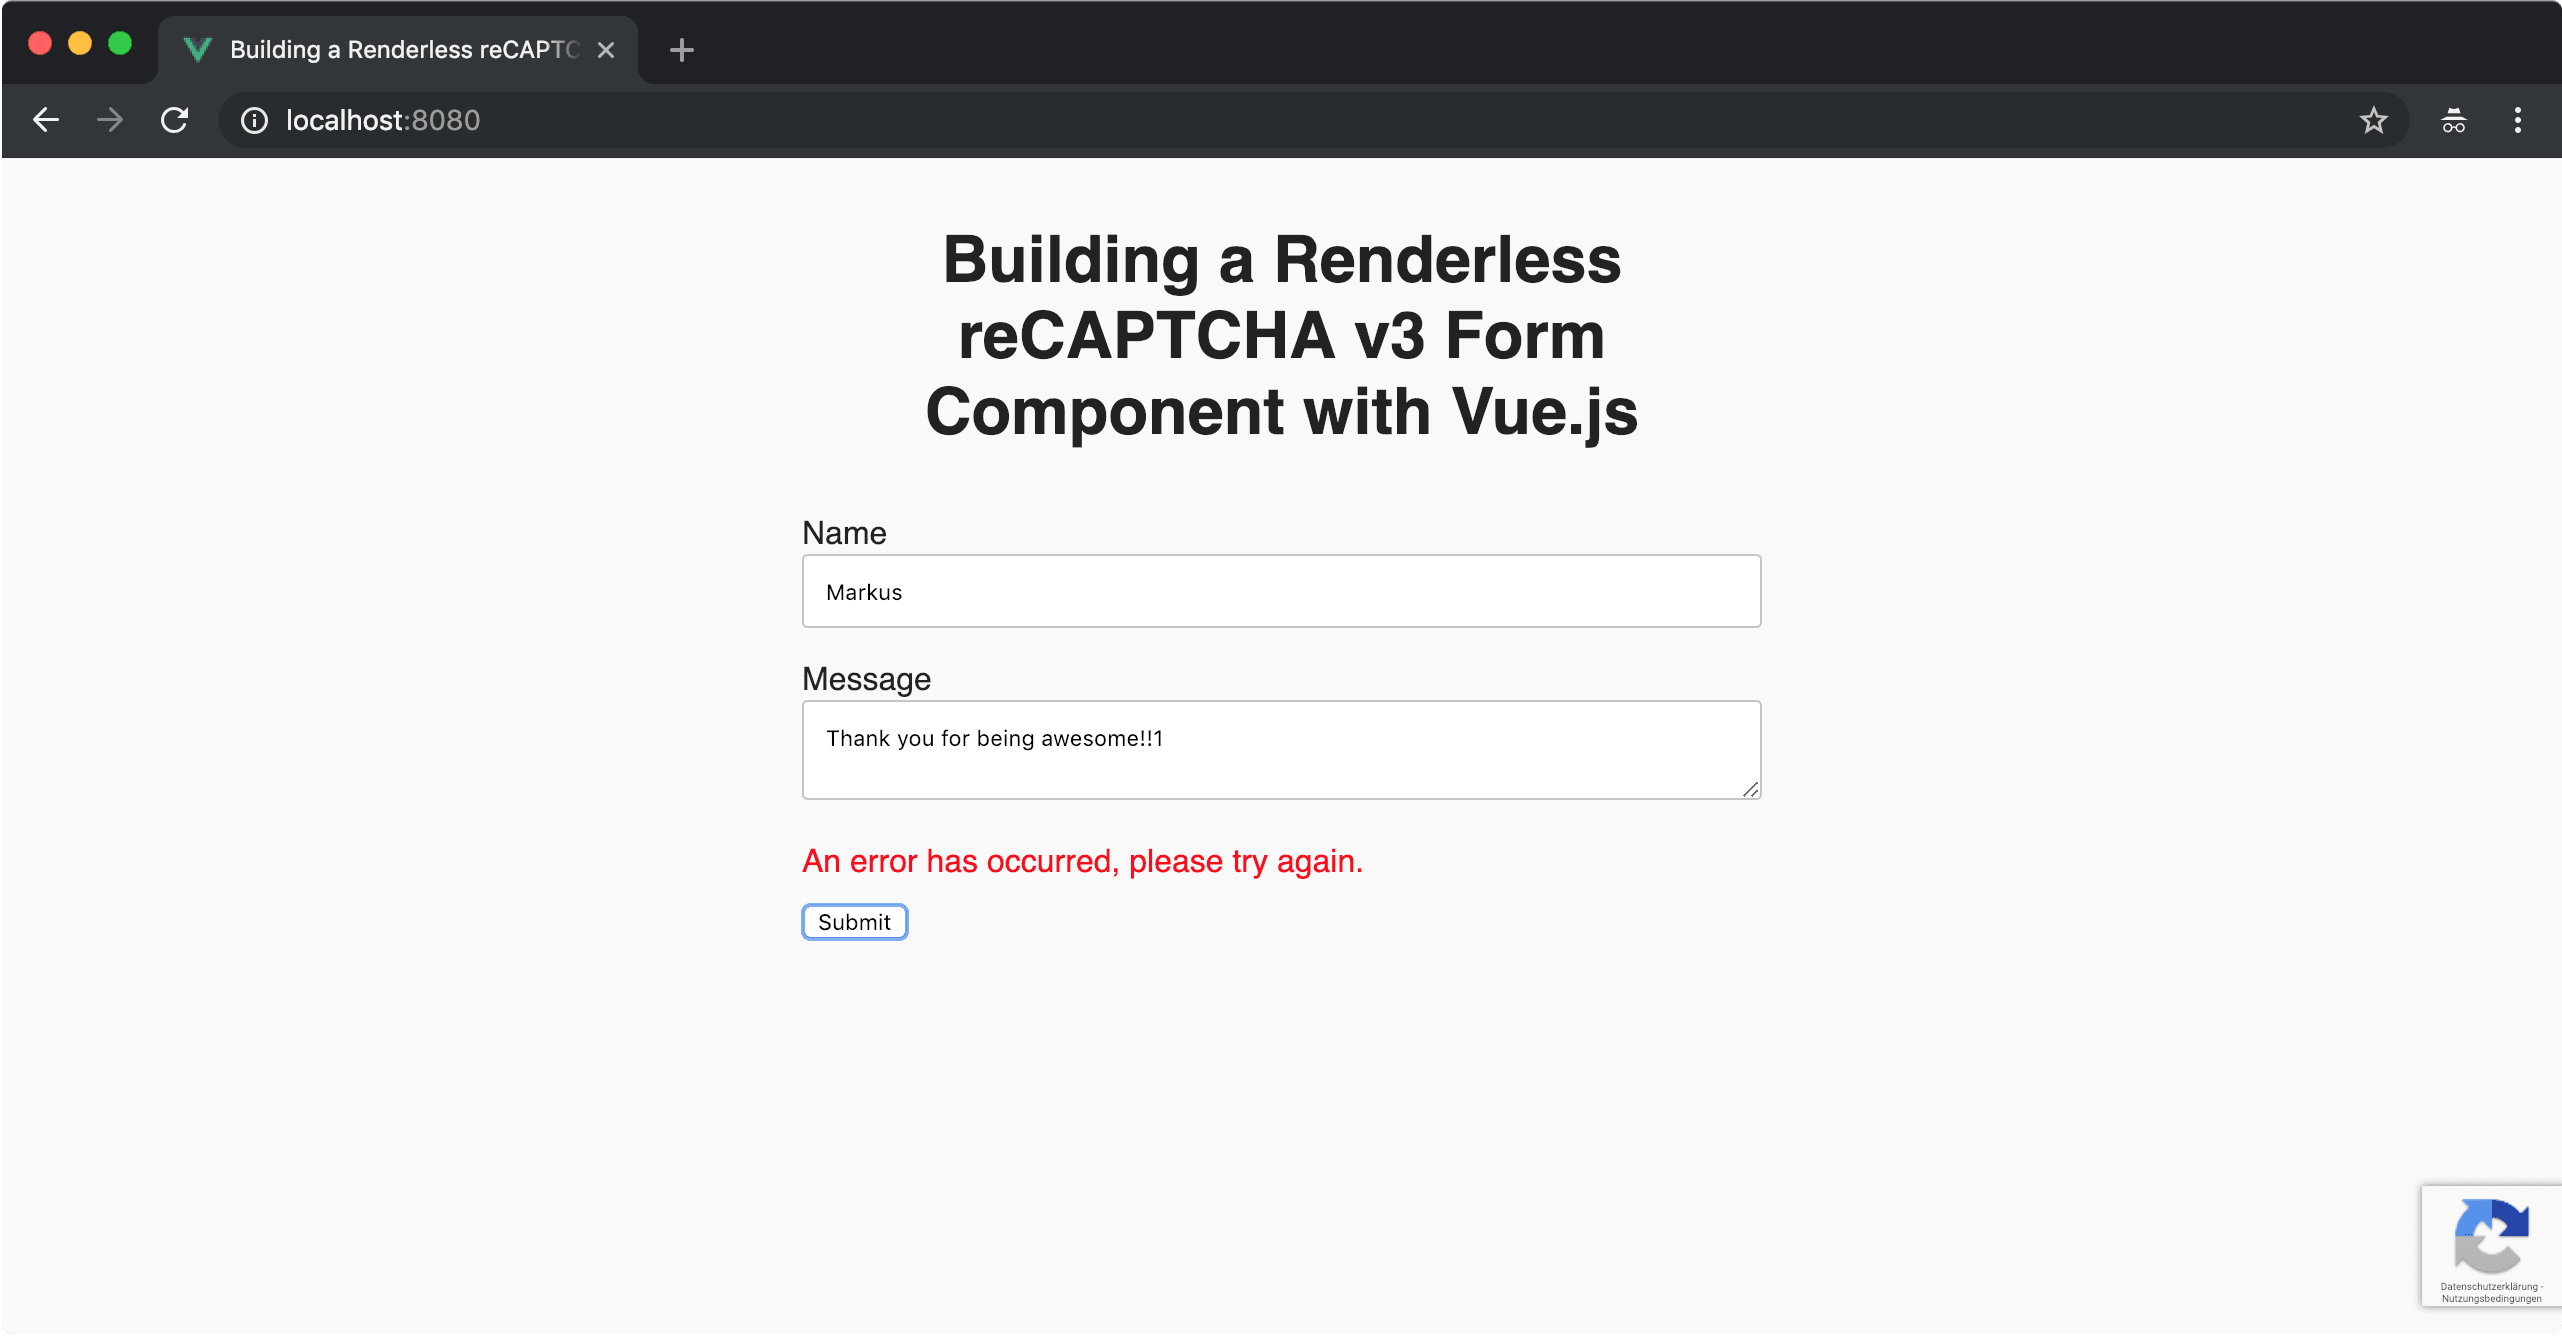 Building a Renderless reCAPTCHA v3 Form Component with Vue js